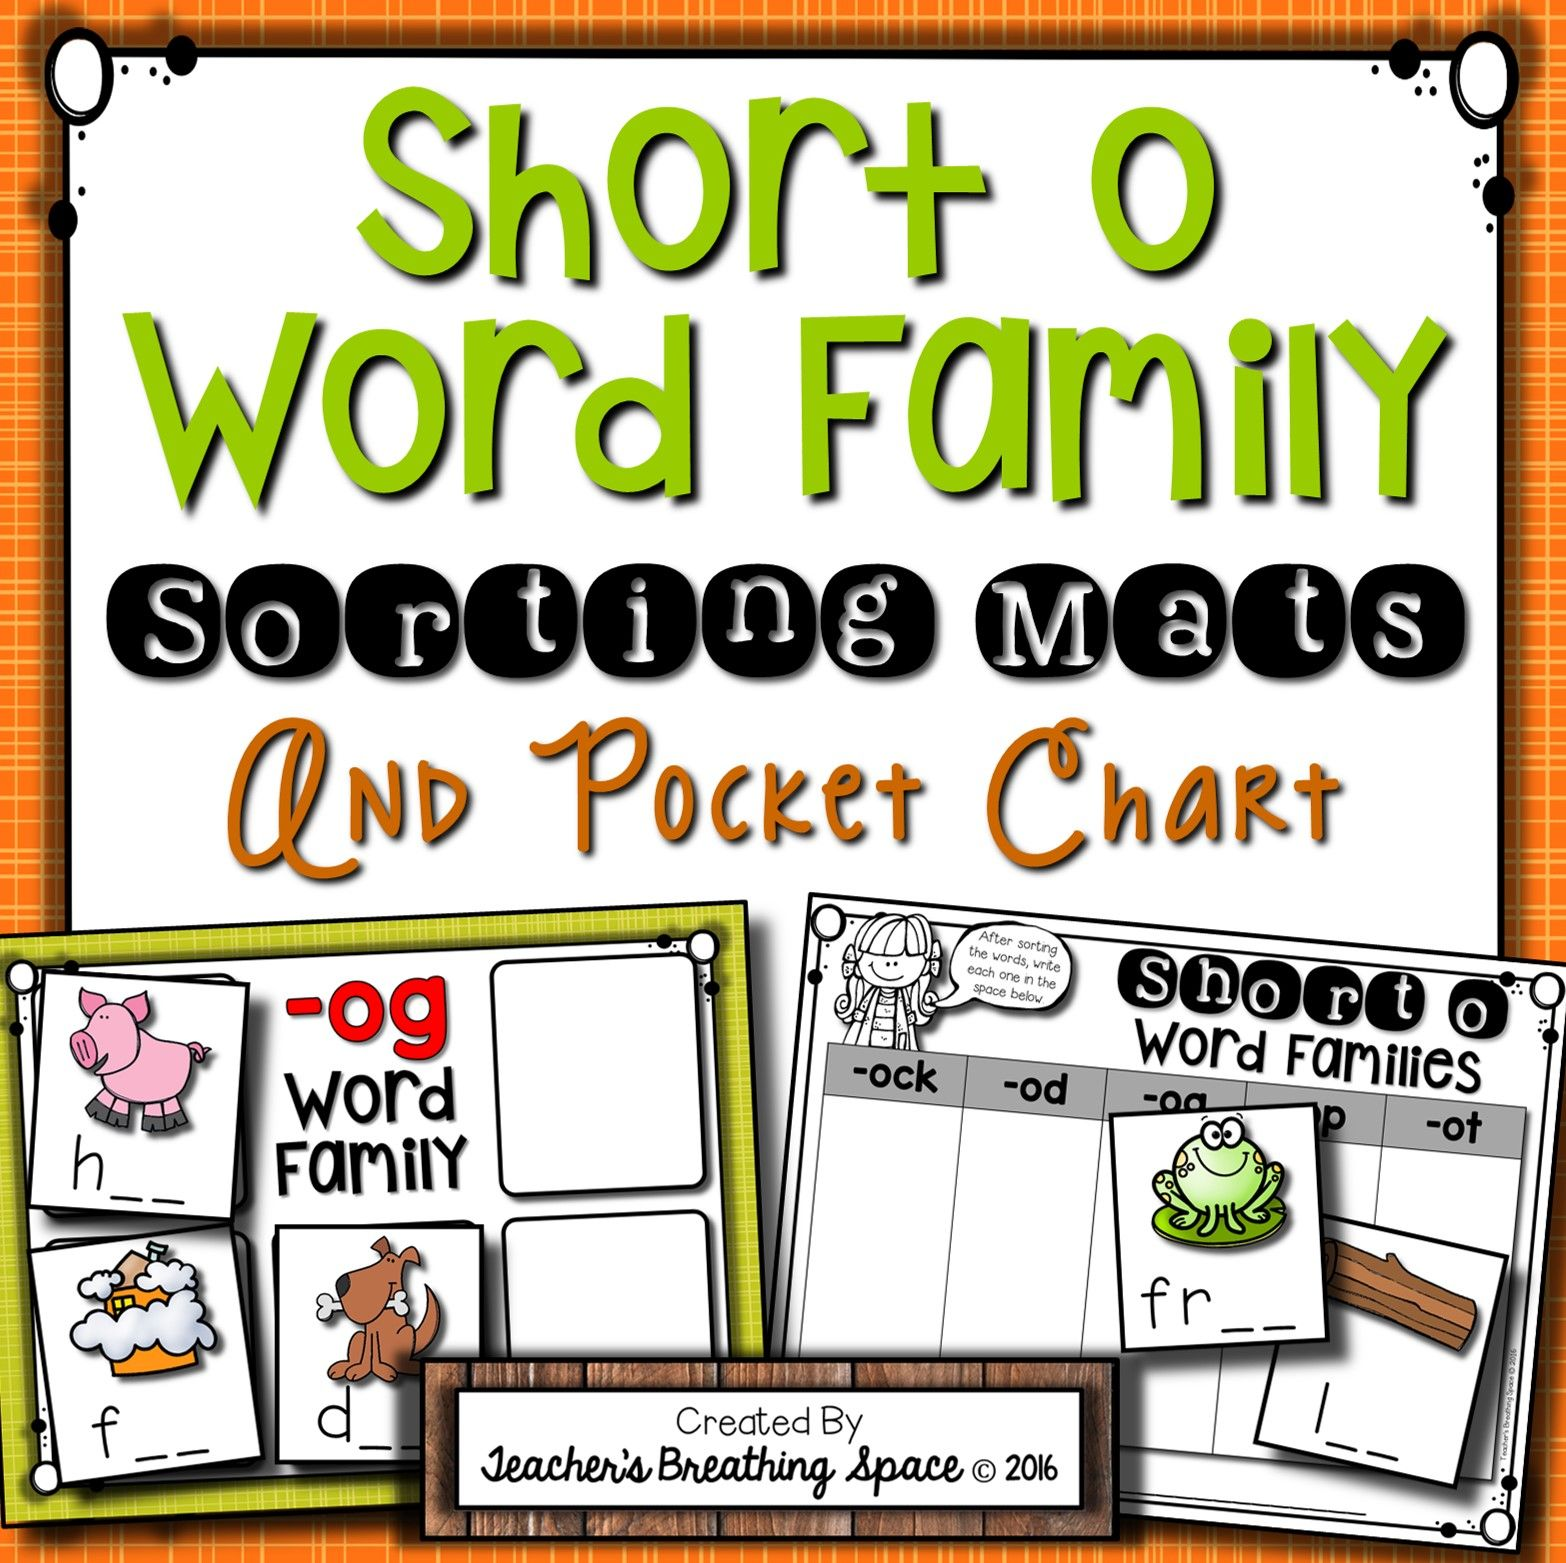 short o word family sorting mats and pocket chart includes 5 sorting mats